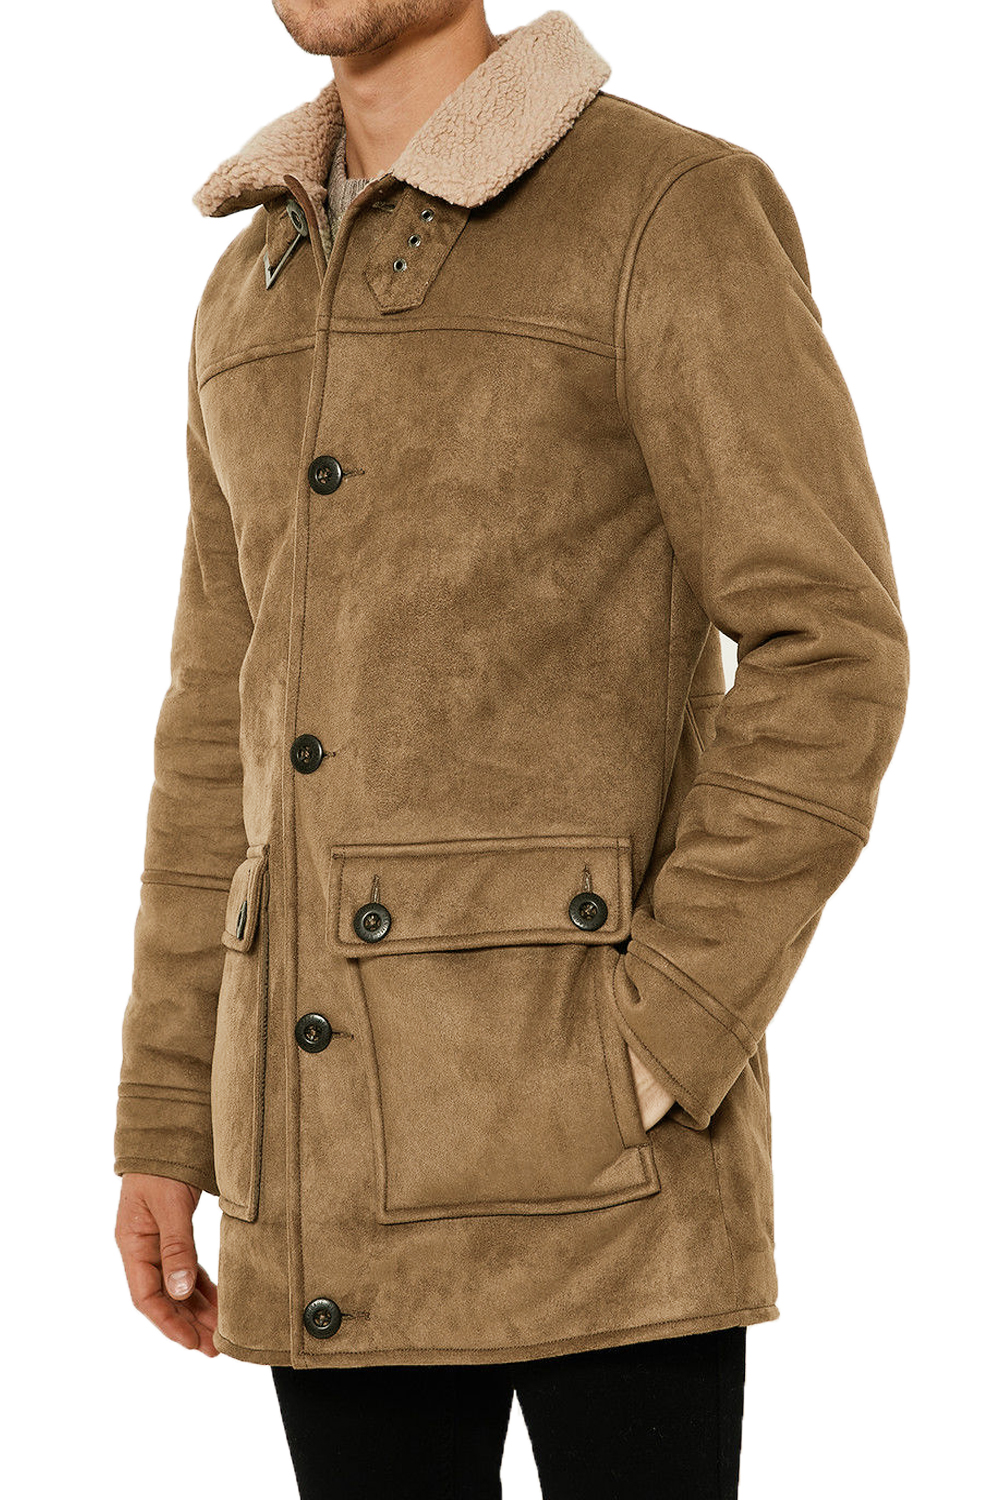 LEATHER & SUEDE OUTERWEAR. Leather jackets and suede jackets are among the most flexible pieces of outerwear a man can have. With designs ranging from clean cut lines handed down from a European tradition to more rugged and worn looks normally associated with American design, leather jackets, in particular, speak to all personalities.